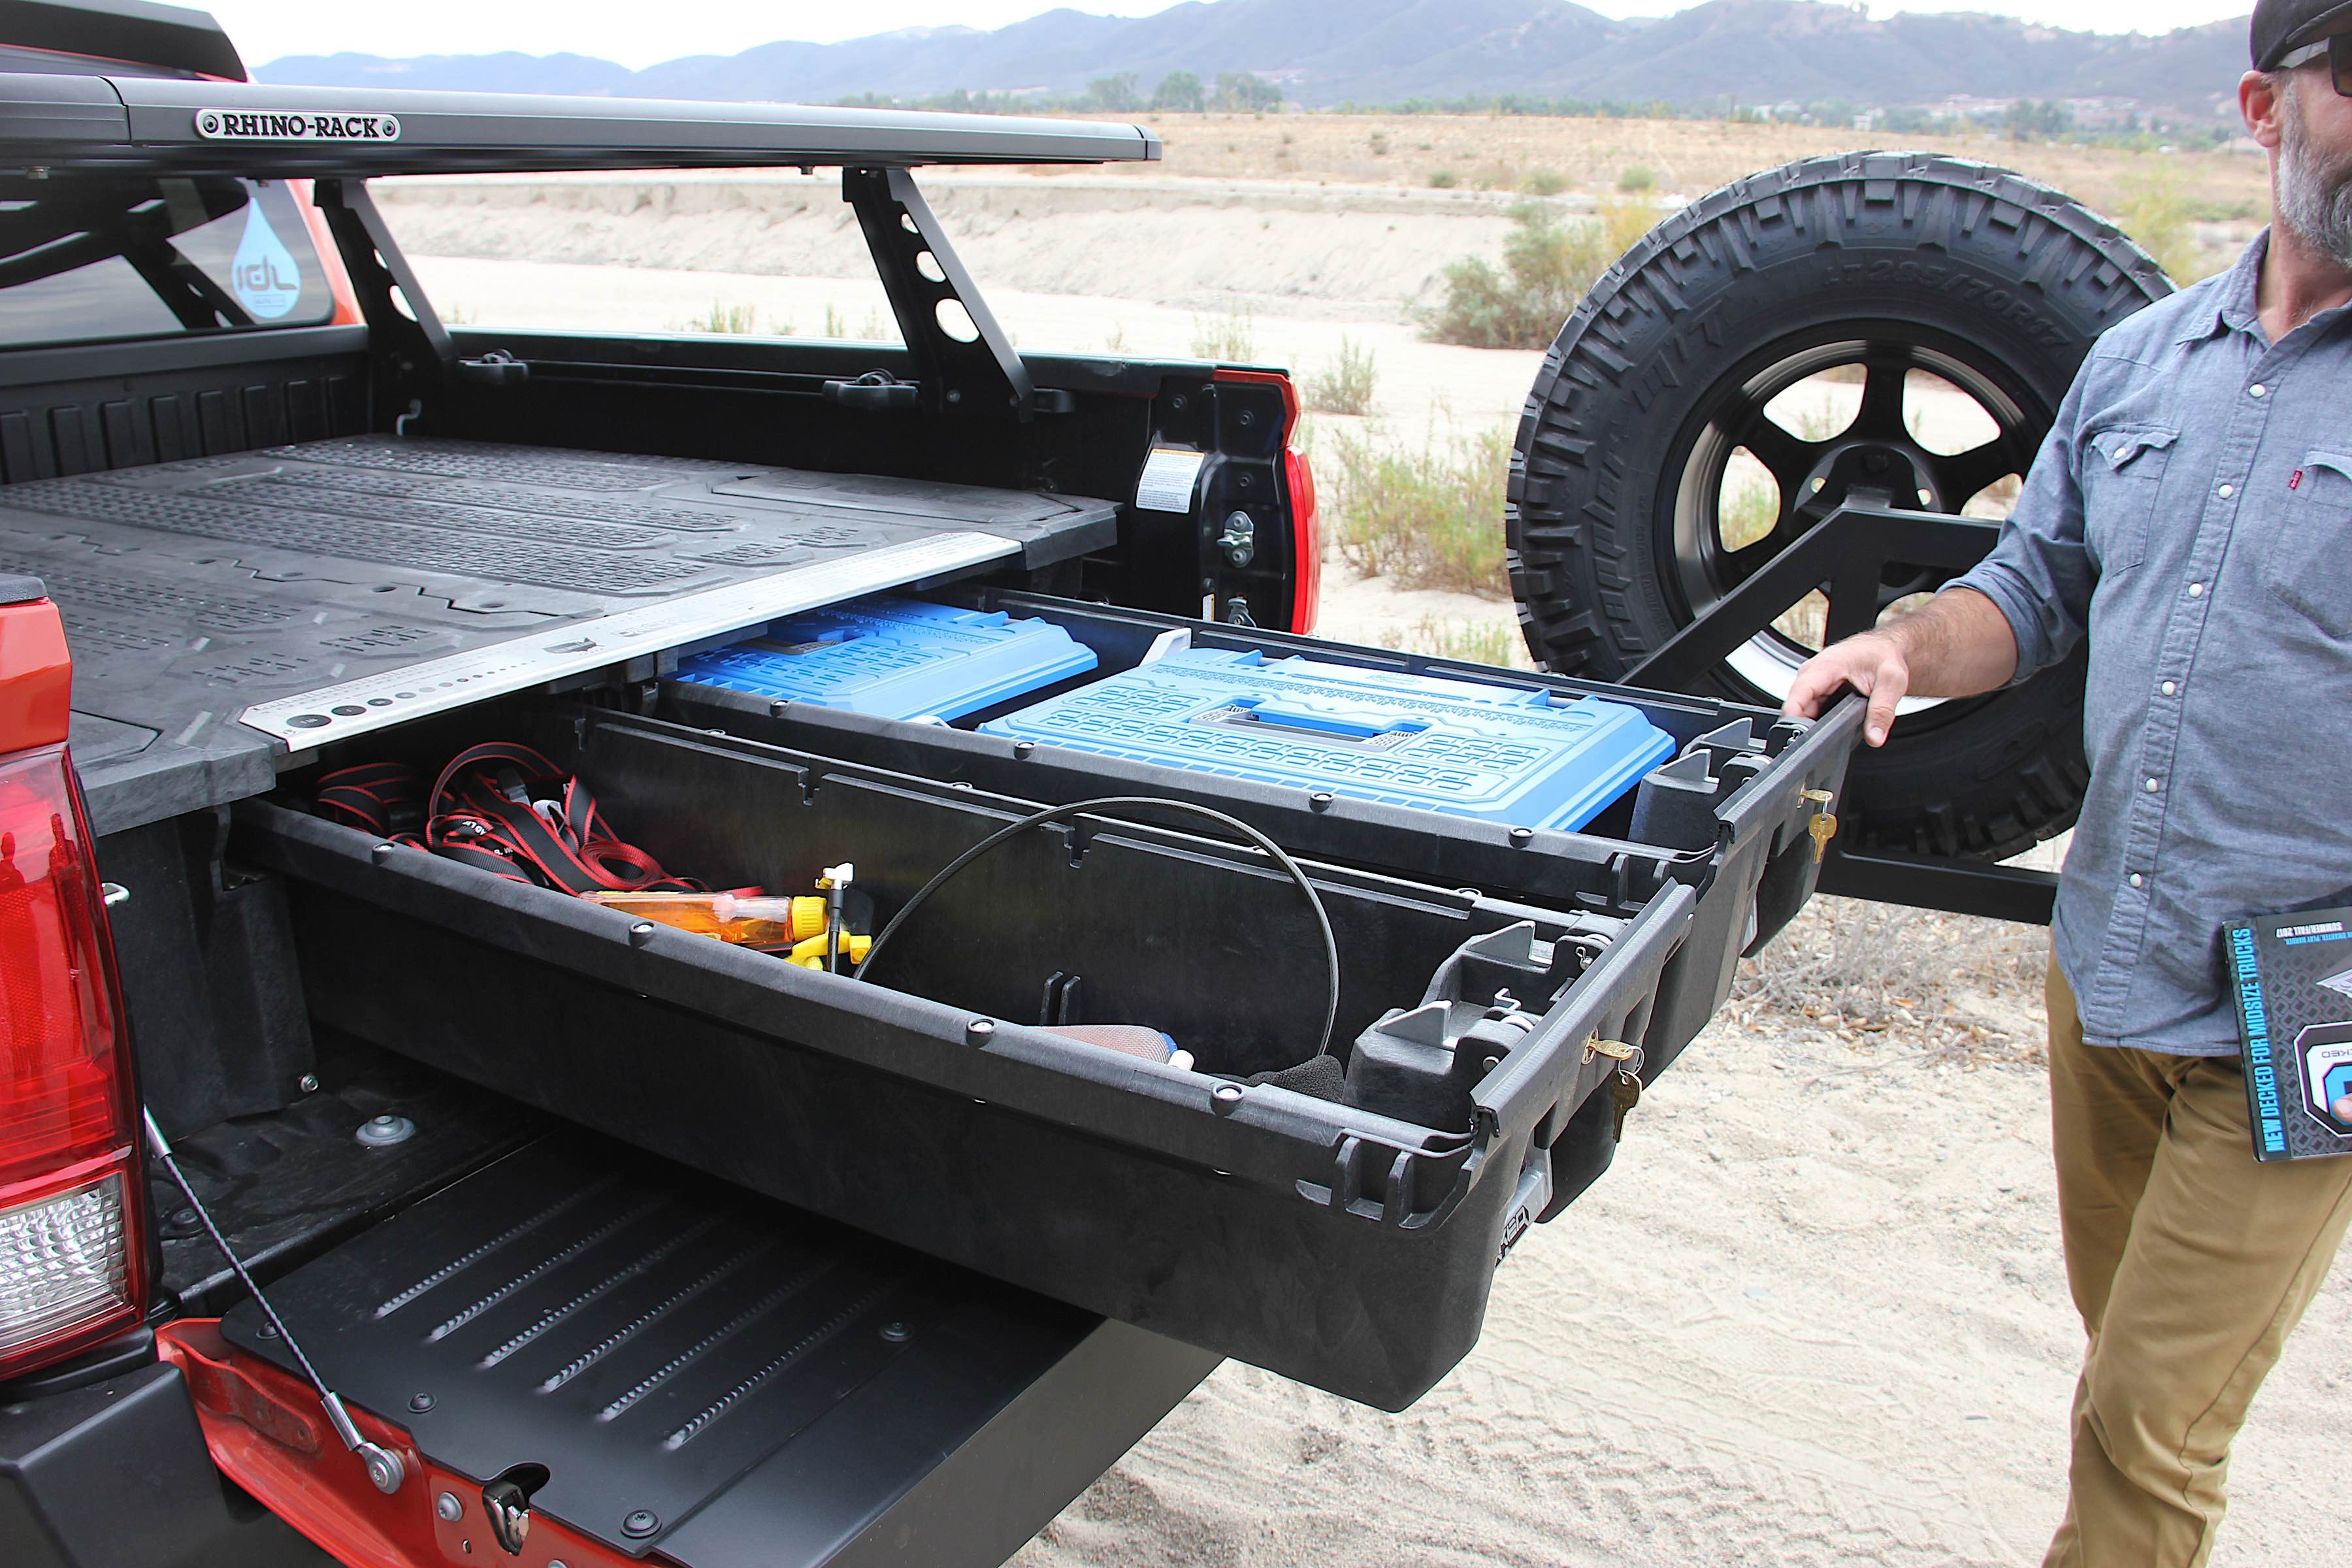 Decked Out Jeep Wrangler >> Decked Out: Toyota Tacoma With Decked In-Bed Storage System